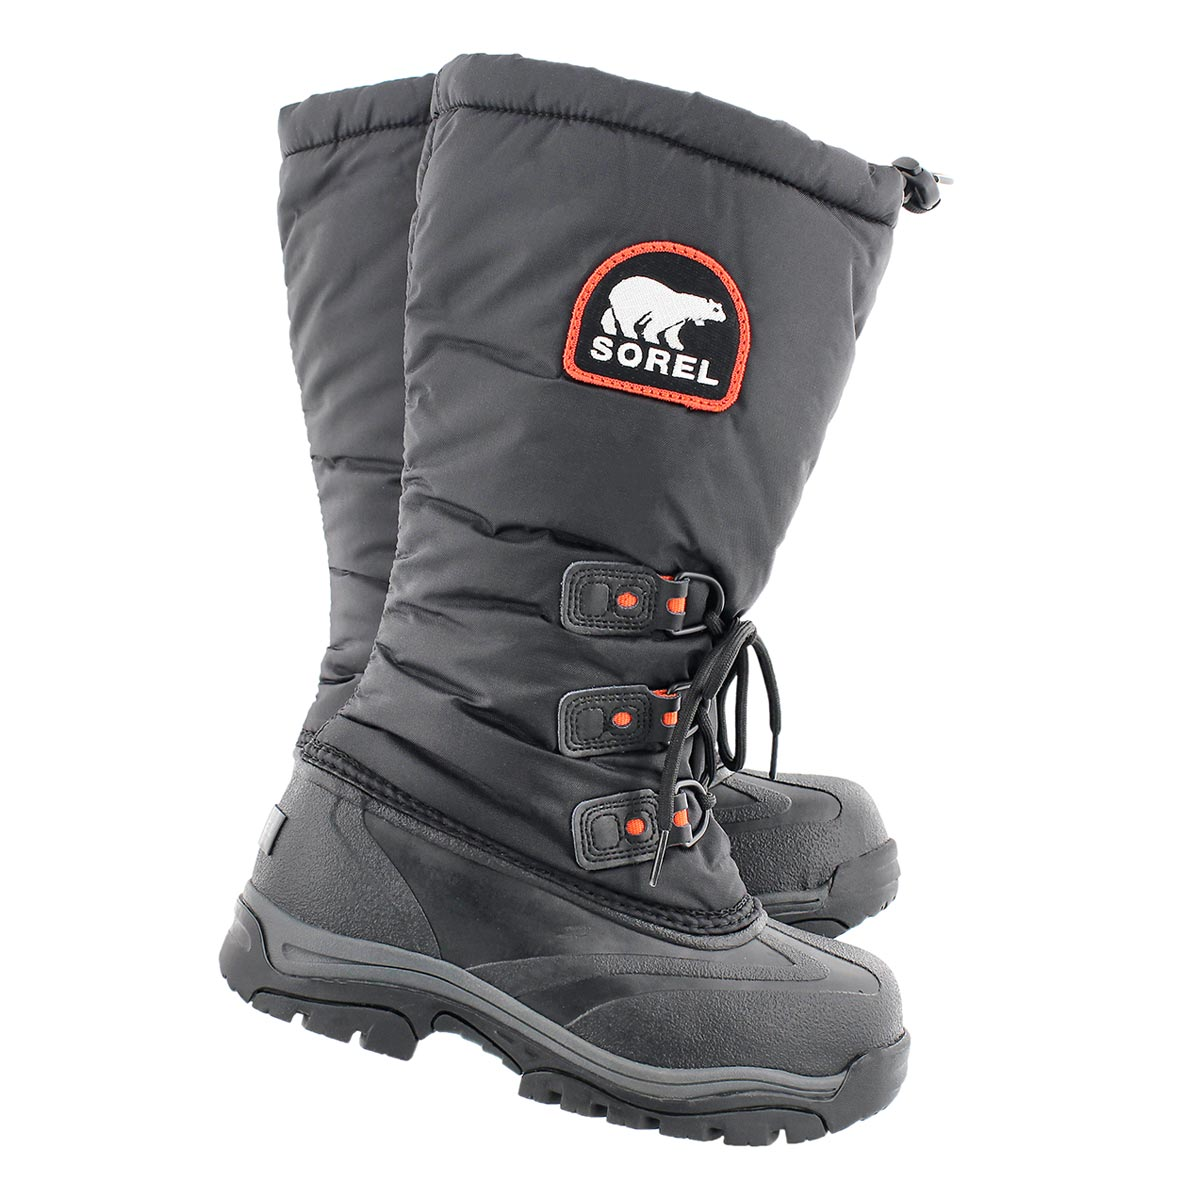 Lds Snowlion XT blkwinter boot